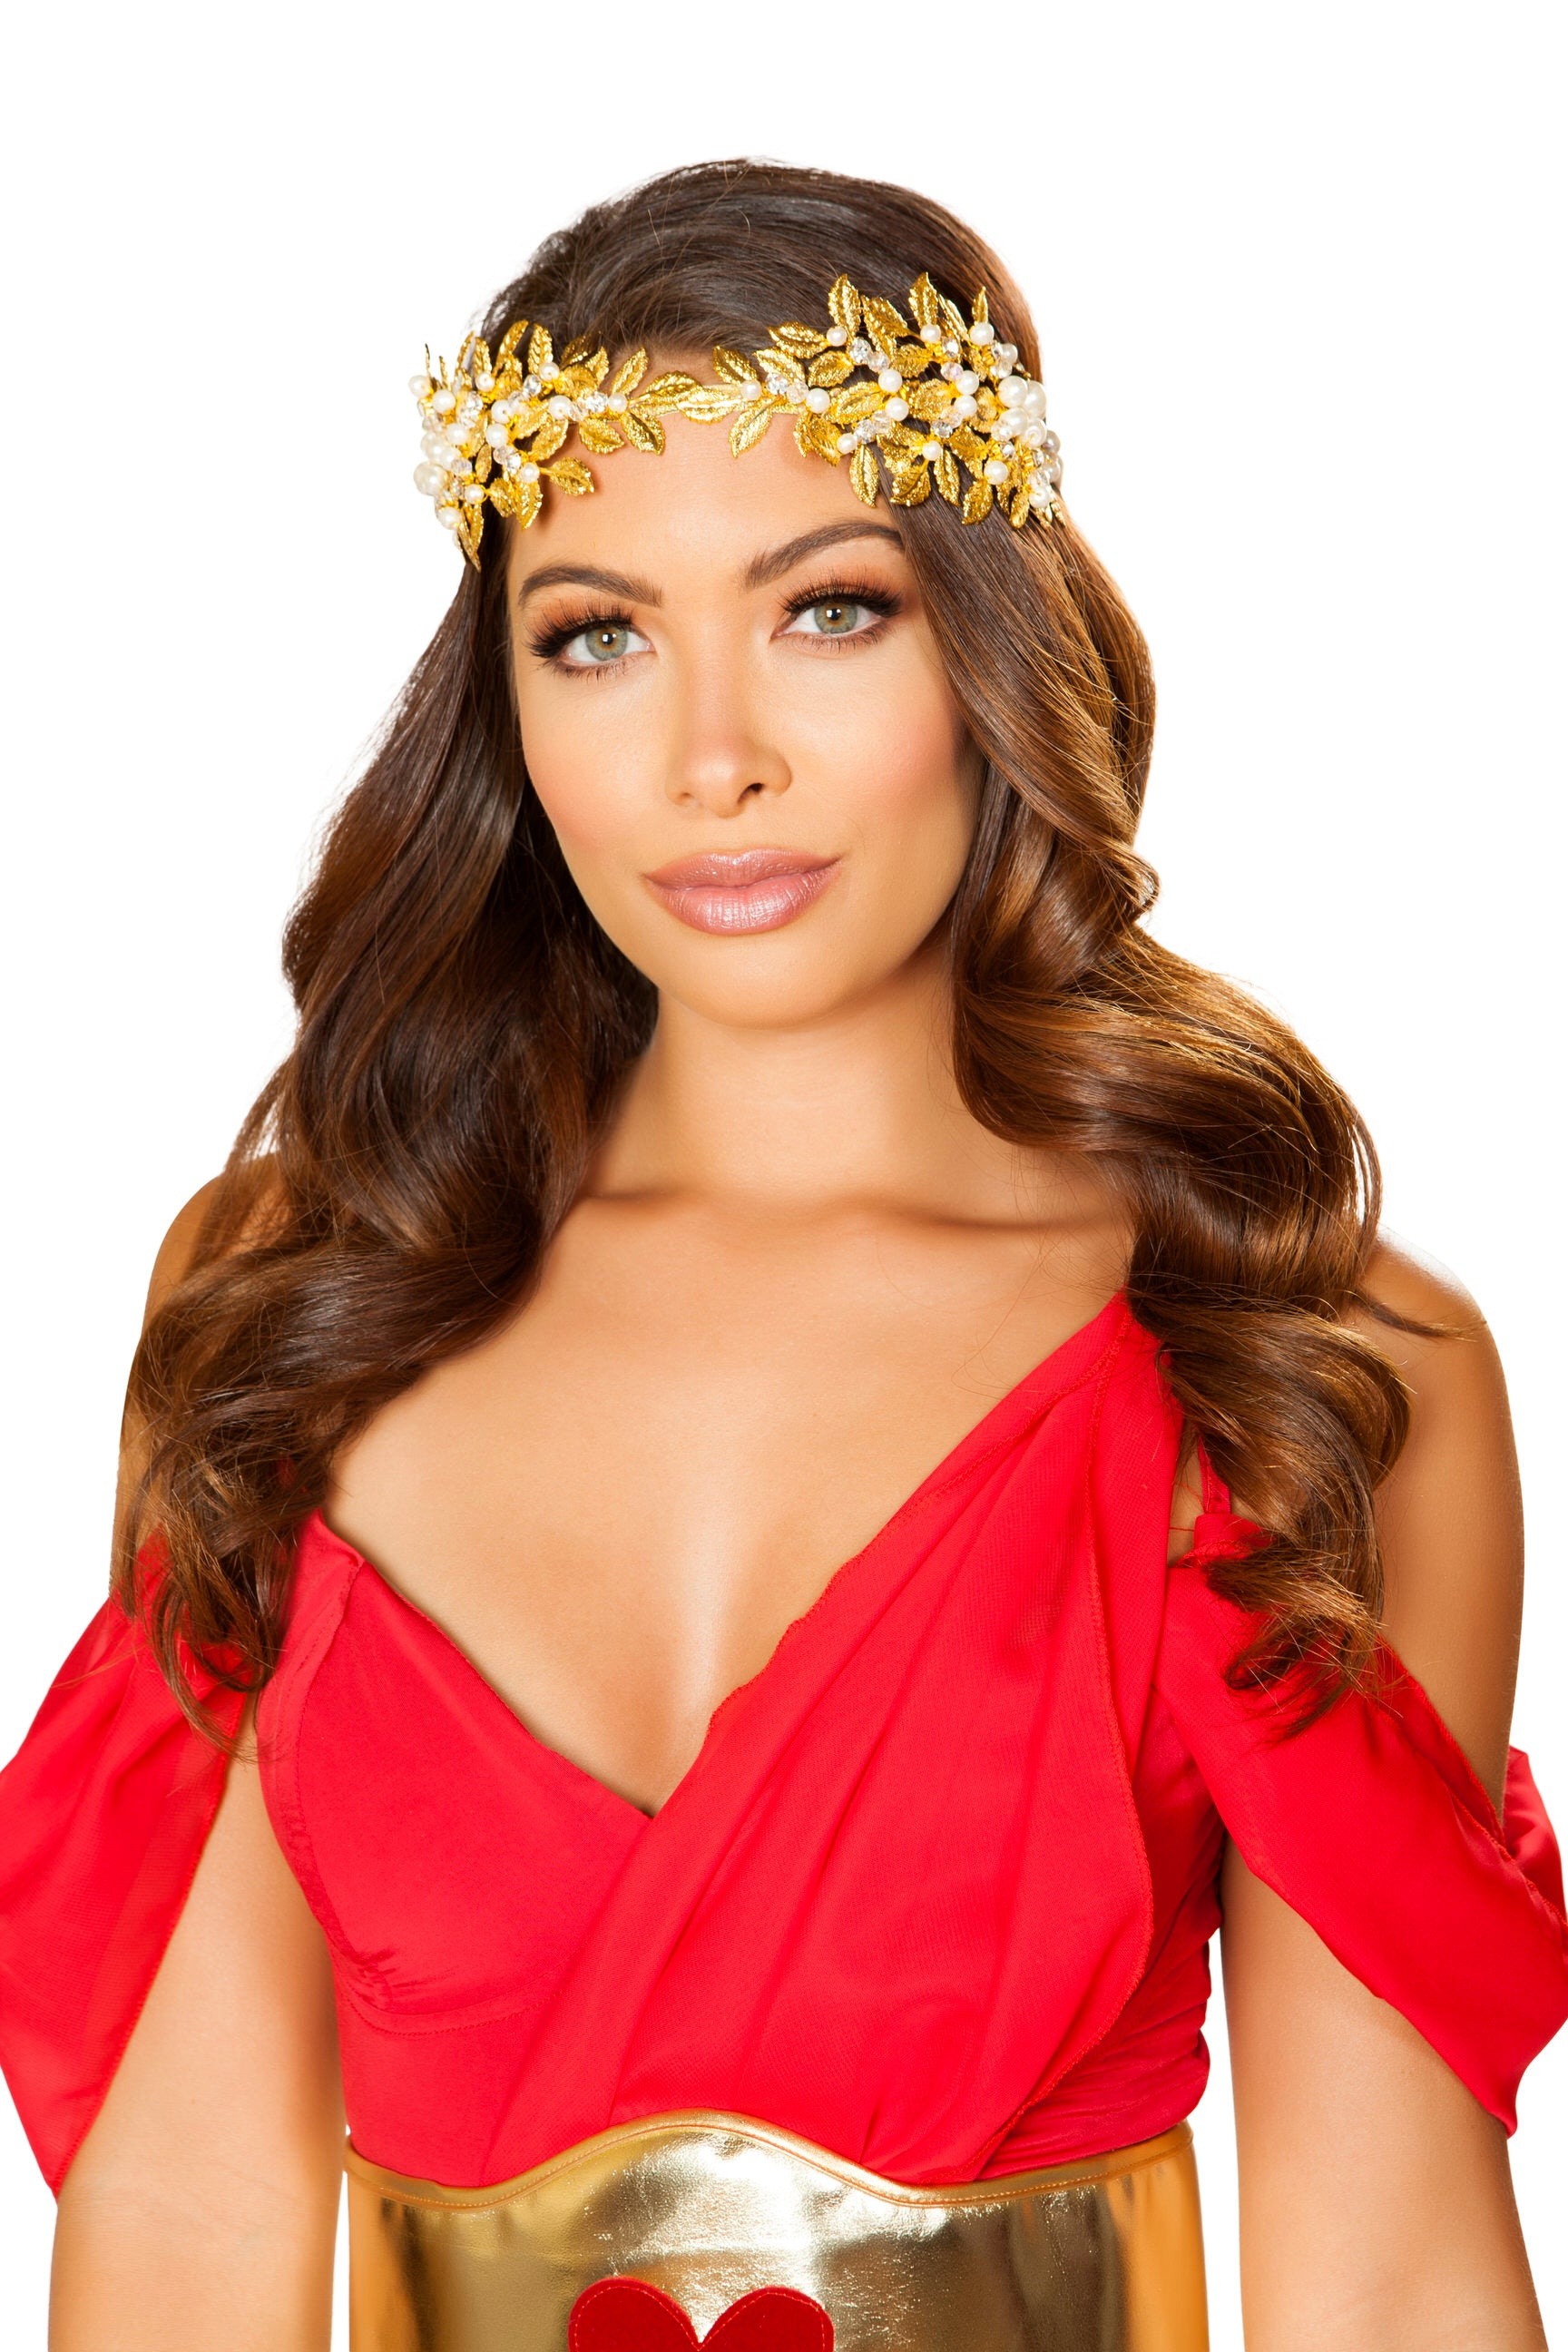 4878 - Goddess Headband ${description} | Roma Costume and Roma Confidential wholesale manufacturer of Women Apparel bulk world wide wholesale and world wide drop ship services for Adult Halloween Costumes, Sexy and Elegant Lingerie, Rave Clothing, Club wear, and Christmas Costumes. Costumes, accessories, Roma Costume, Inc., Roma Costume, Roma Confidential, Wholesale clothing, drop ship, drop ship service, Wholesale Lingerie, Wholesale Adult Halloween Costumes, Rave Clothing, EDM Clothing, Festival Wear, Christmas Costumes, Clubwear, Club wear.